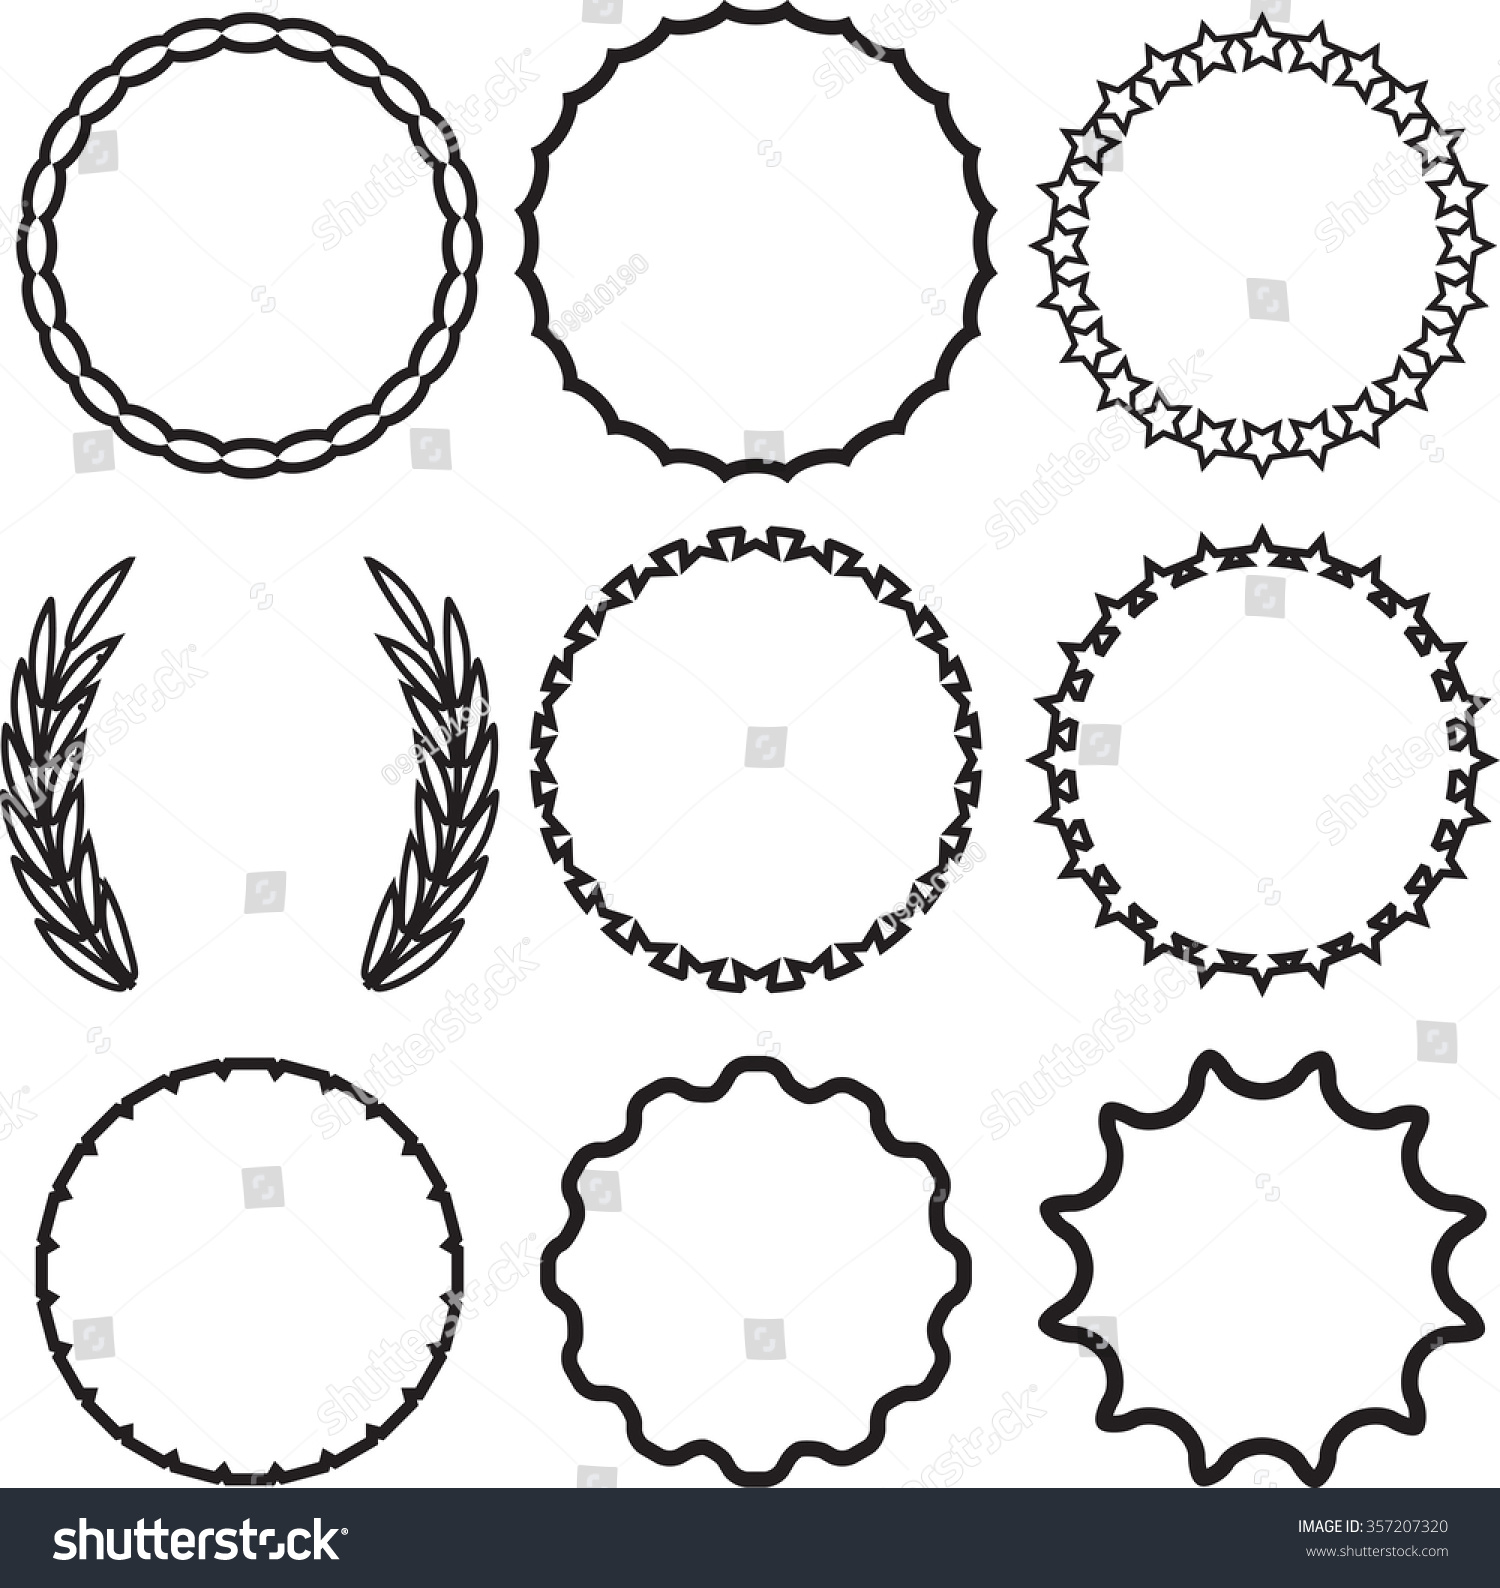 vintage clip art circle - photo #25